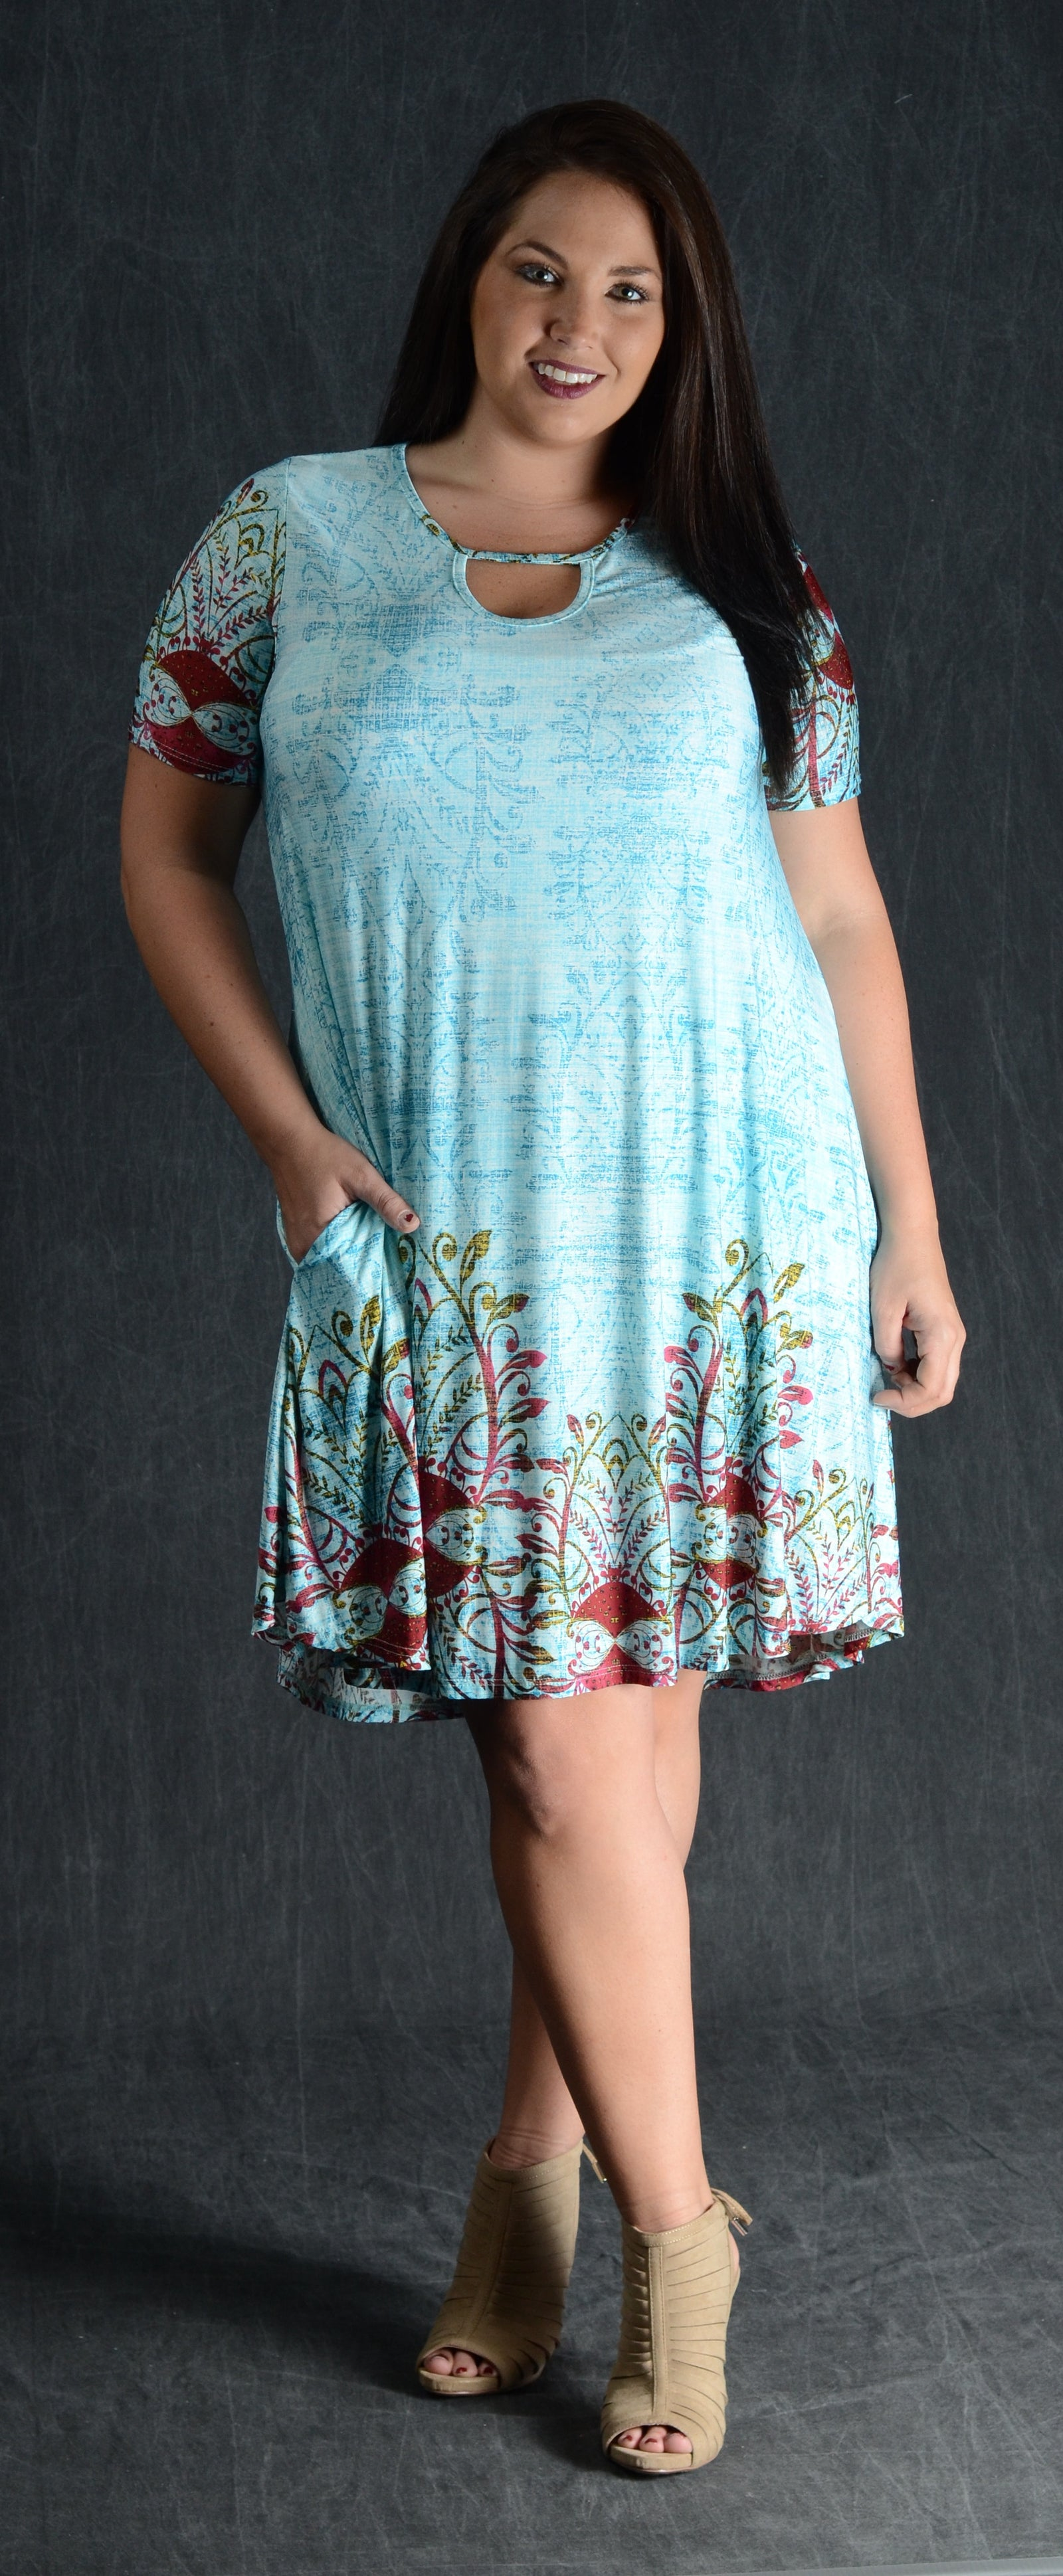 Mint Keyhole Pocket Dress - www.mycurvystore.com - Curvy Boutique